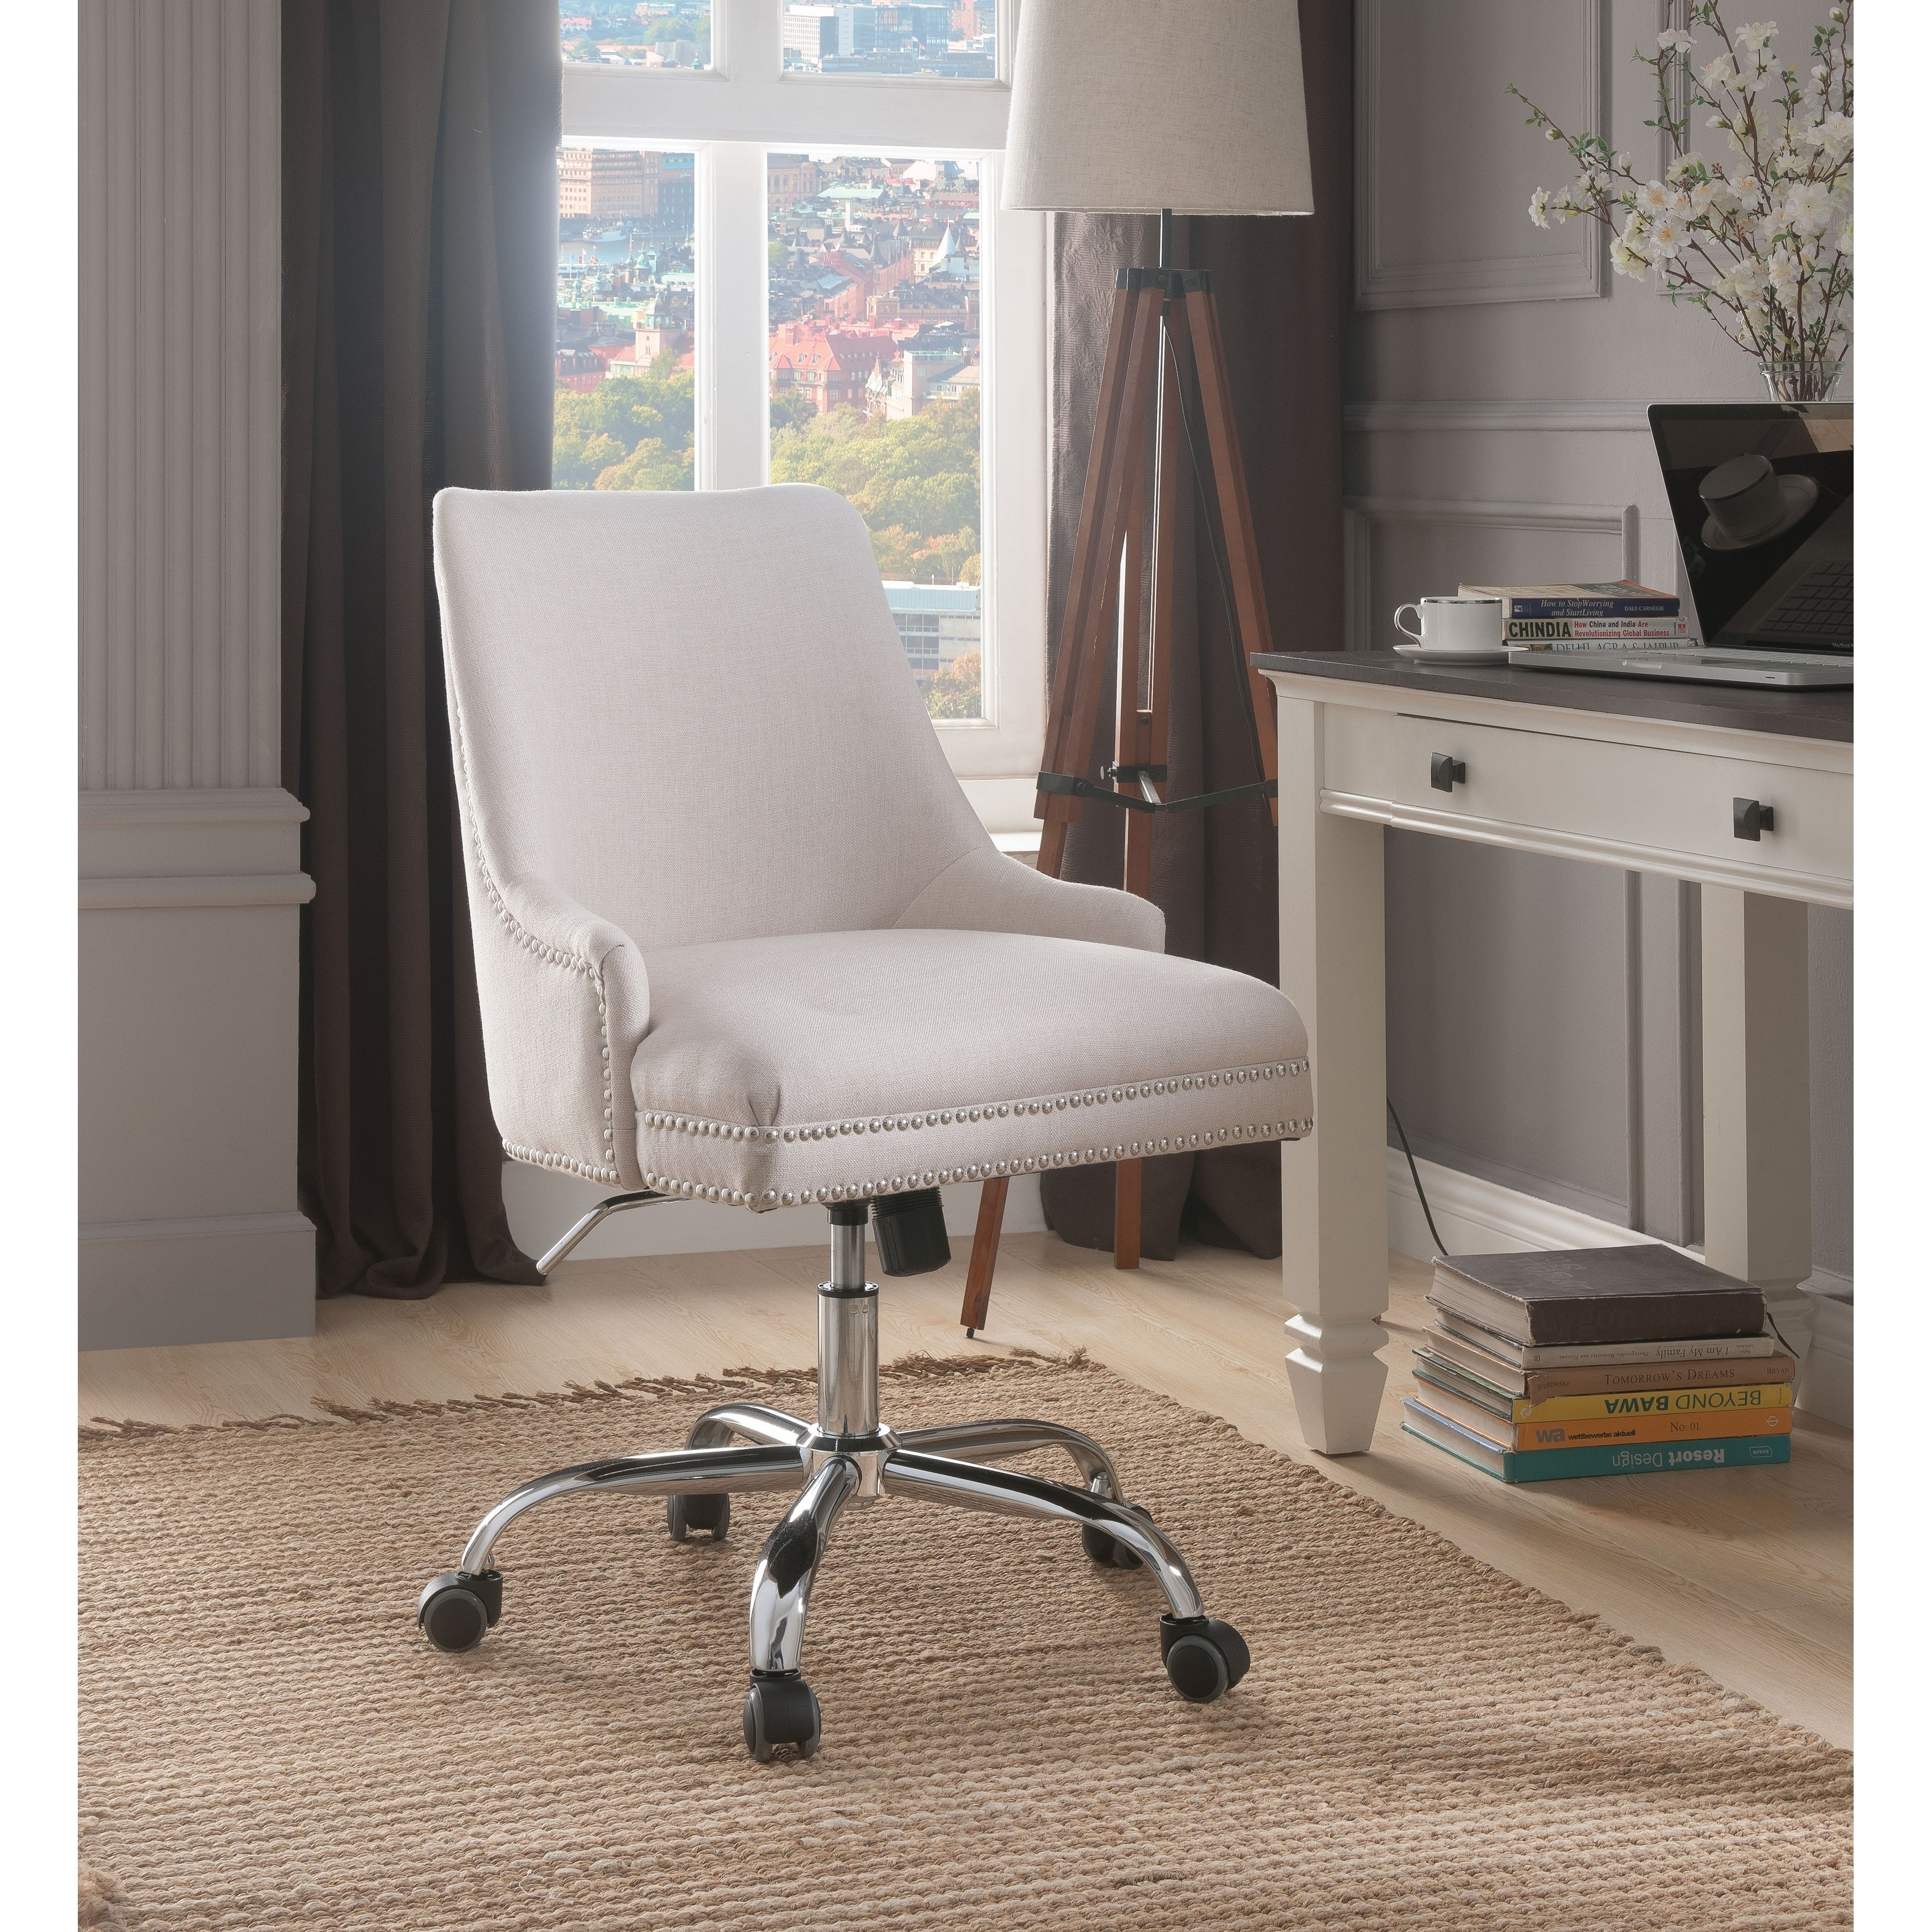 Plush Velvet Executive Office Chair Lift Up Business Computer Swivel Chairs Seat